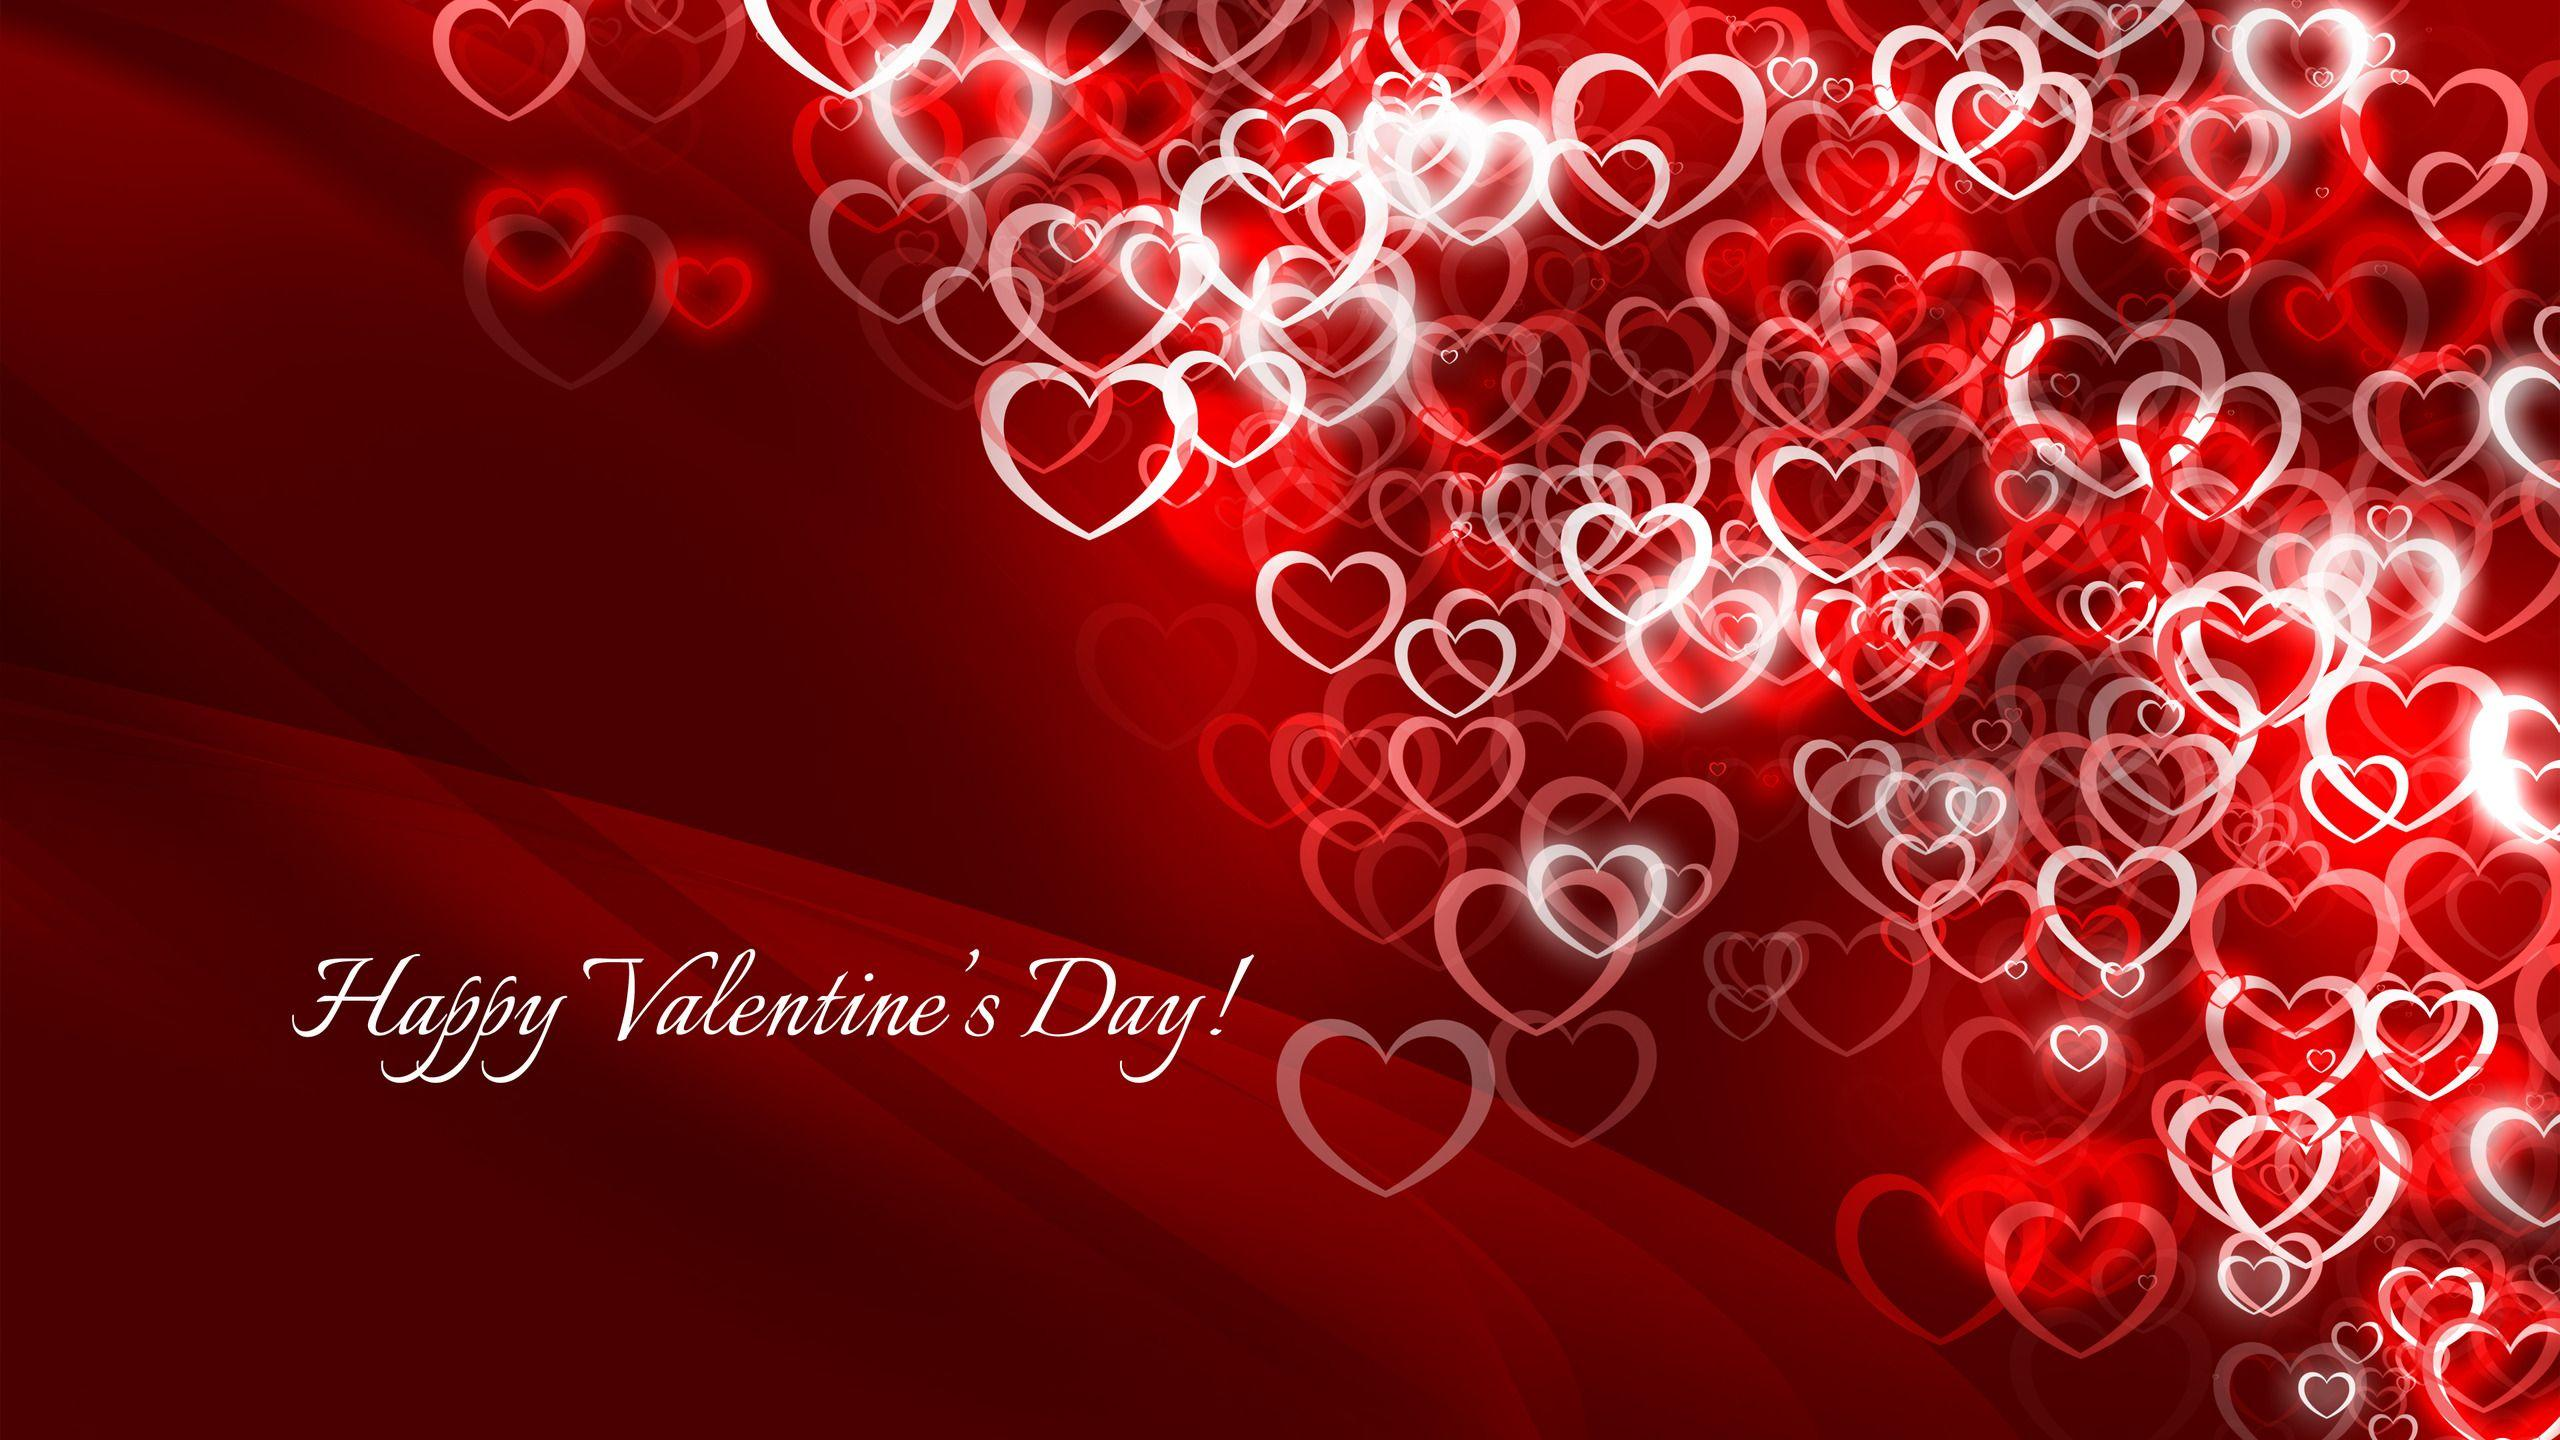 happy valentine\u0027s day 2019 wallpapers wallpaper cavevalentines day wallpapers hd \u0026 14th feb images 2019 for lovers